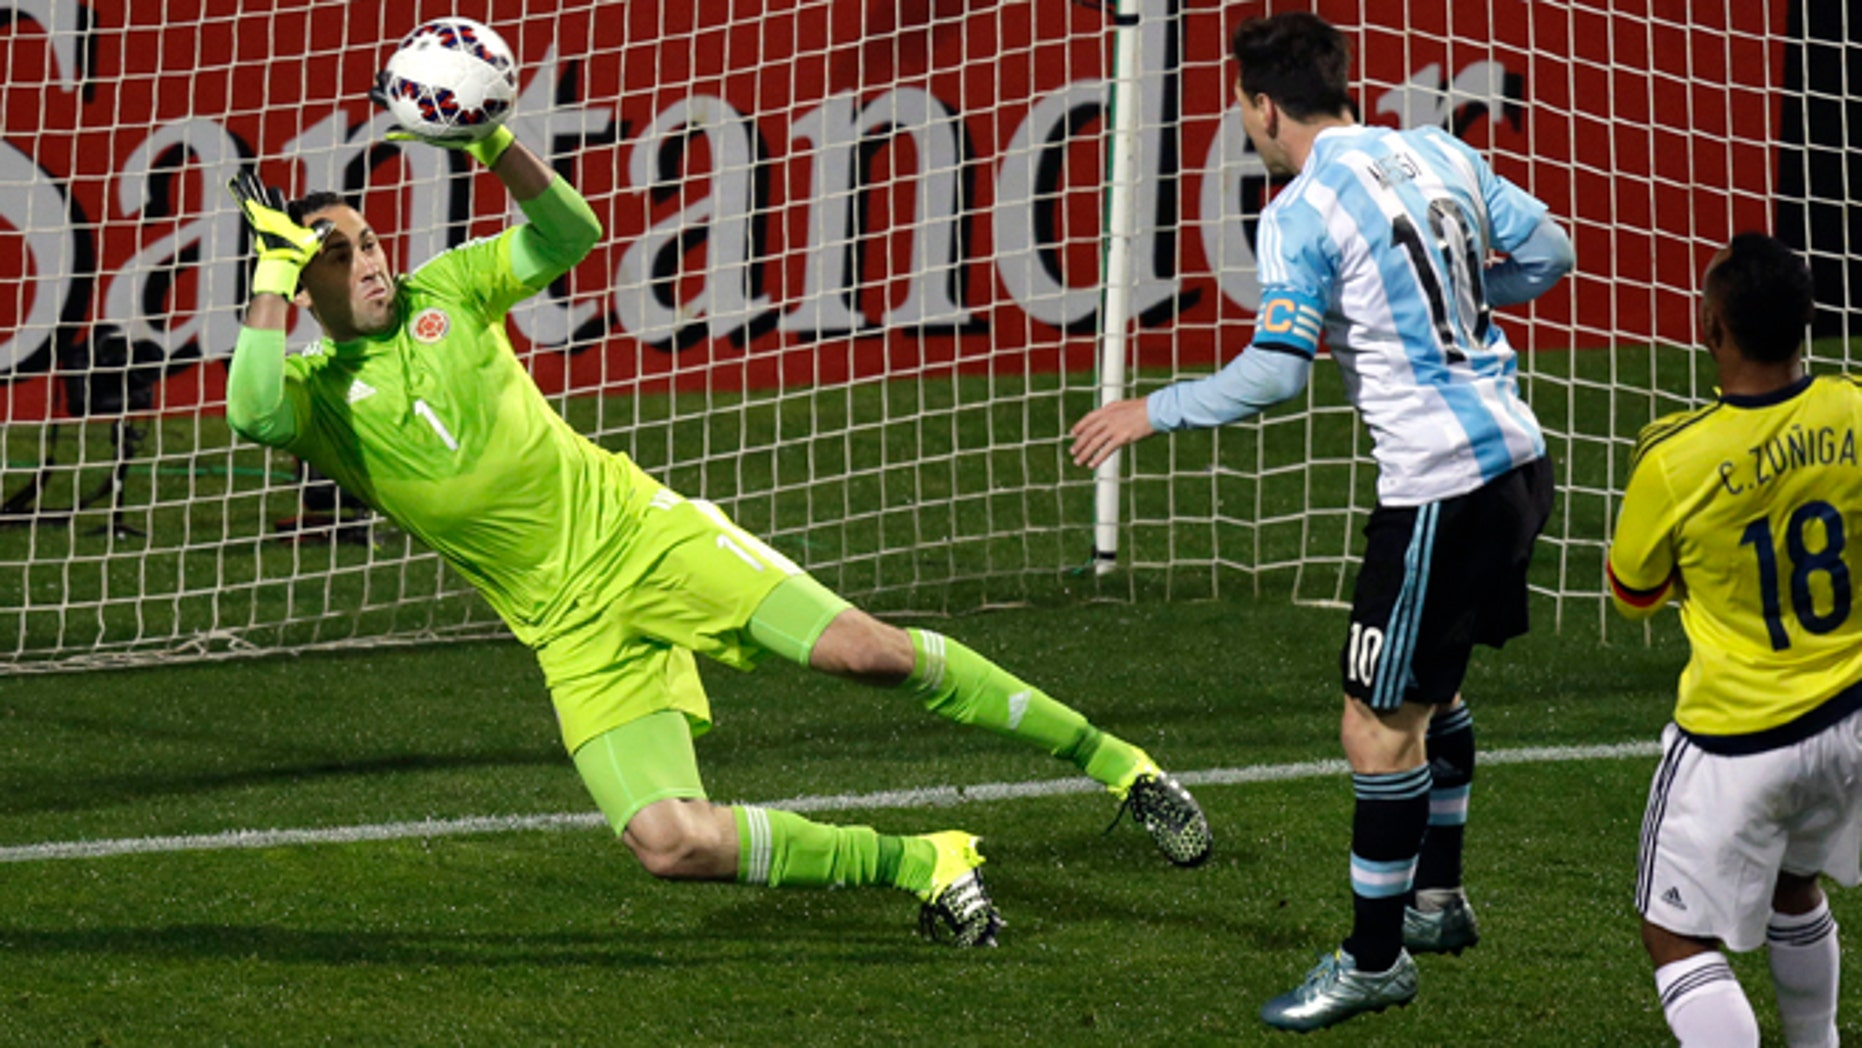 Colombia goalkeeper David Ospina stops a headshot by Argentina's Lionel Messi, center, during a Copa America quarterfinal soccer match at the Sausalito Stadium in Vina del Mar, Chile, Friday, June 26, 2015. (AP Photo/Jorge Saenz)